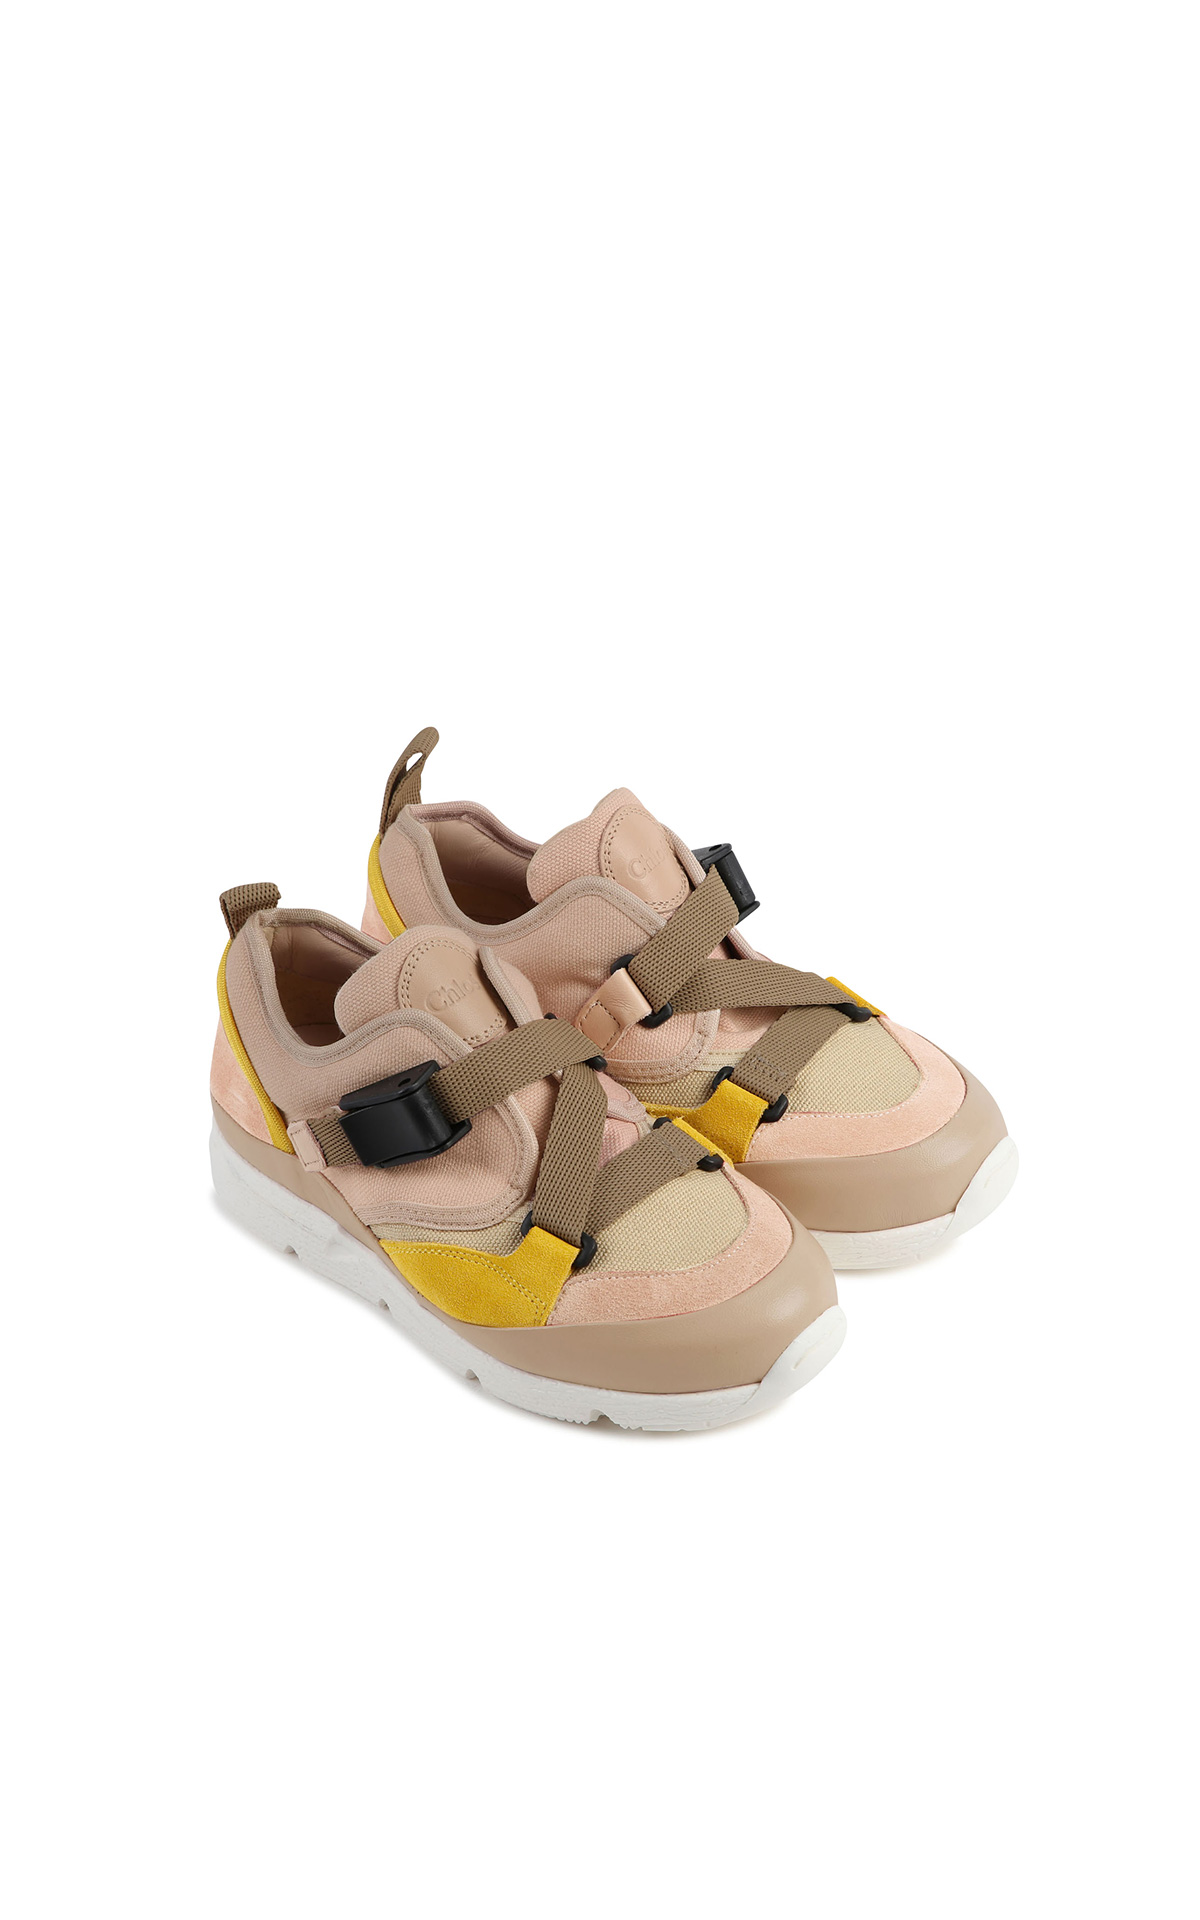 La Vallée Village Chloé Kids girl sneakers